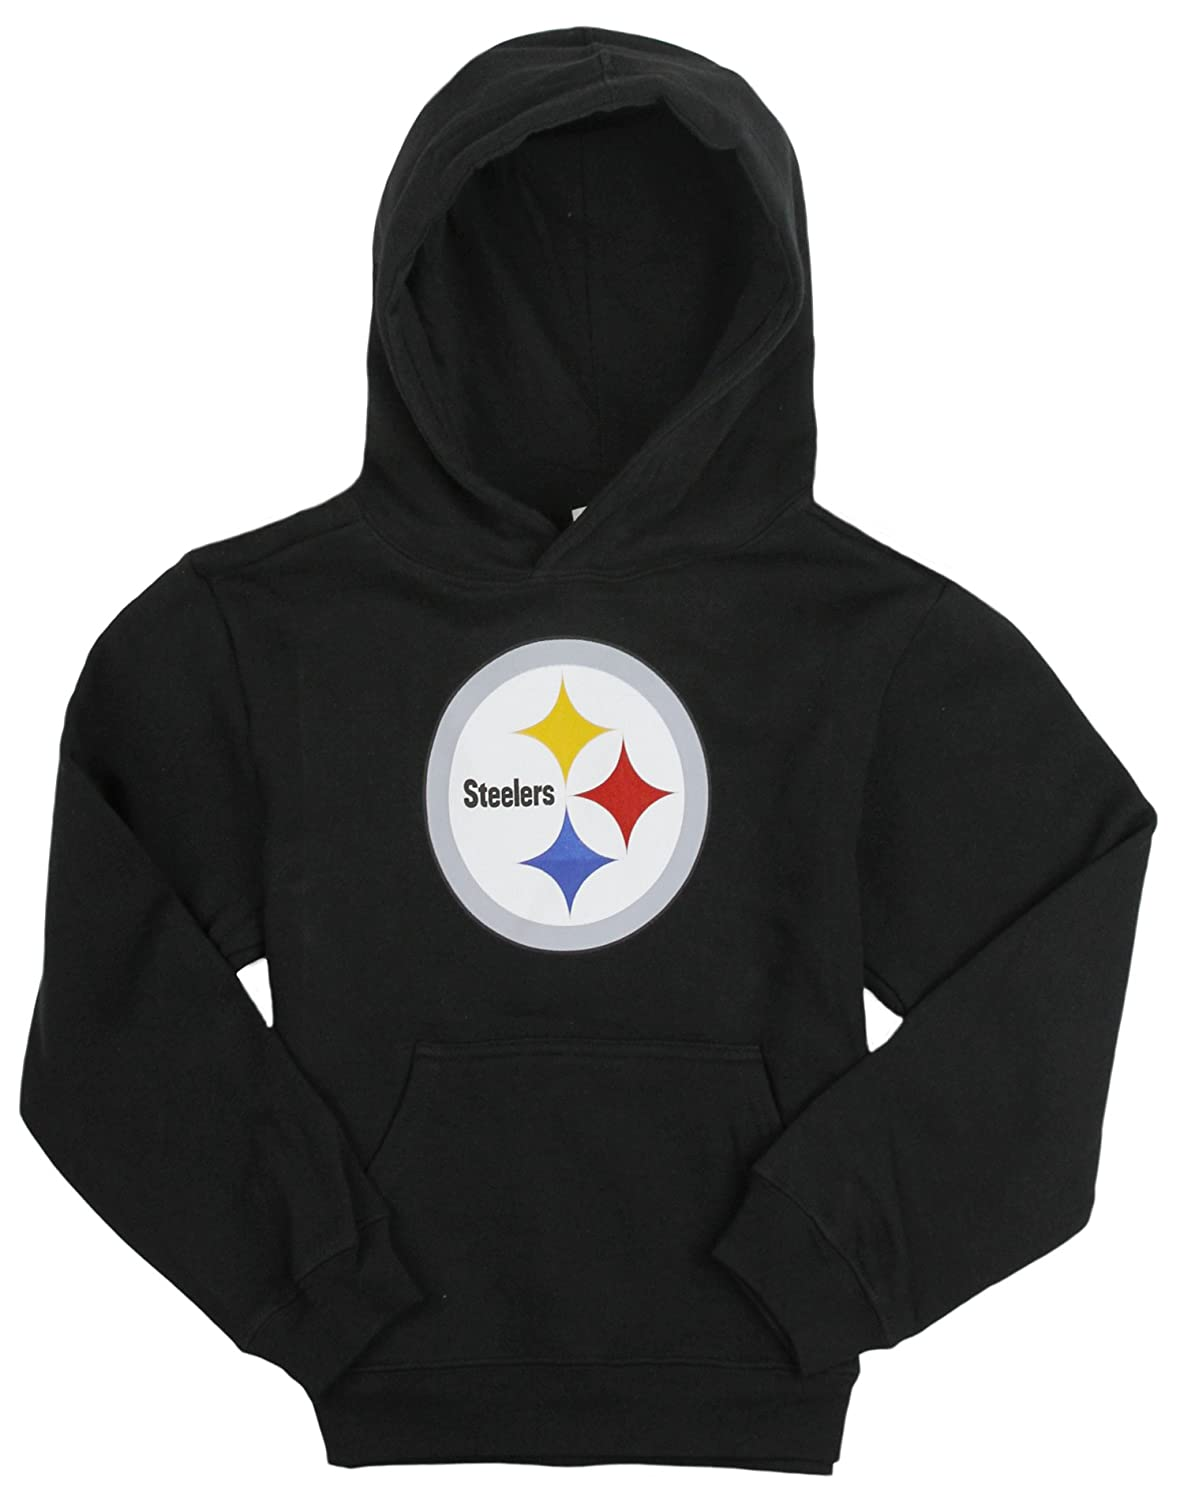 save off 160f2 3cd54 Outerstuff Pittsburgh Steelers NFL Big Girls, Kids Football Hoodie, Black